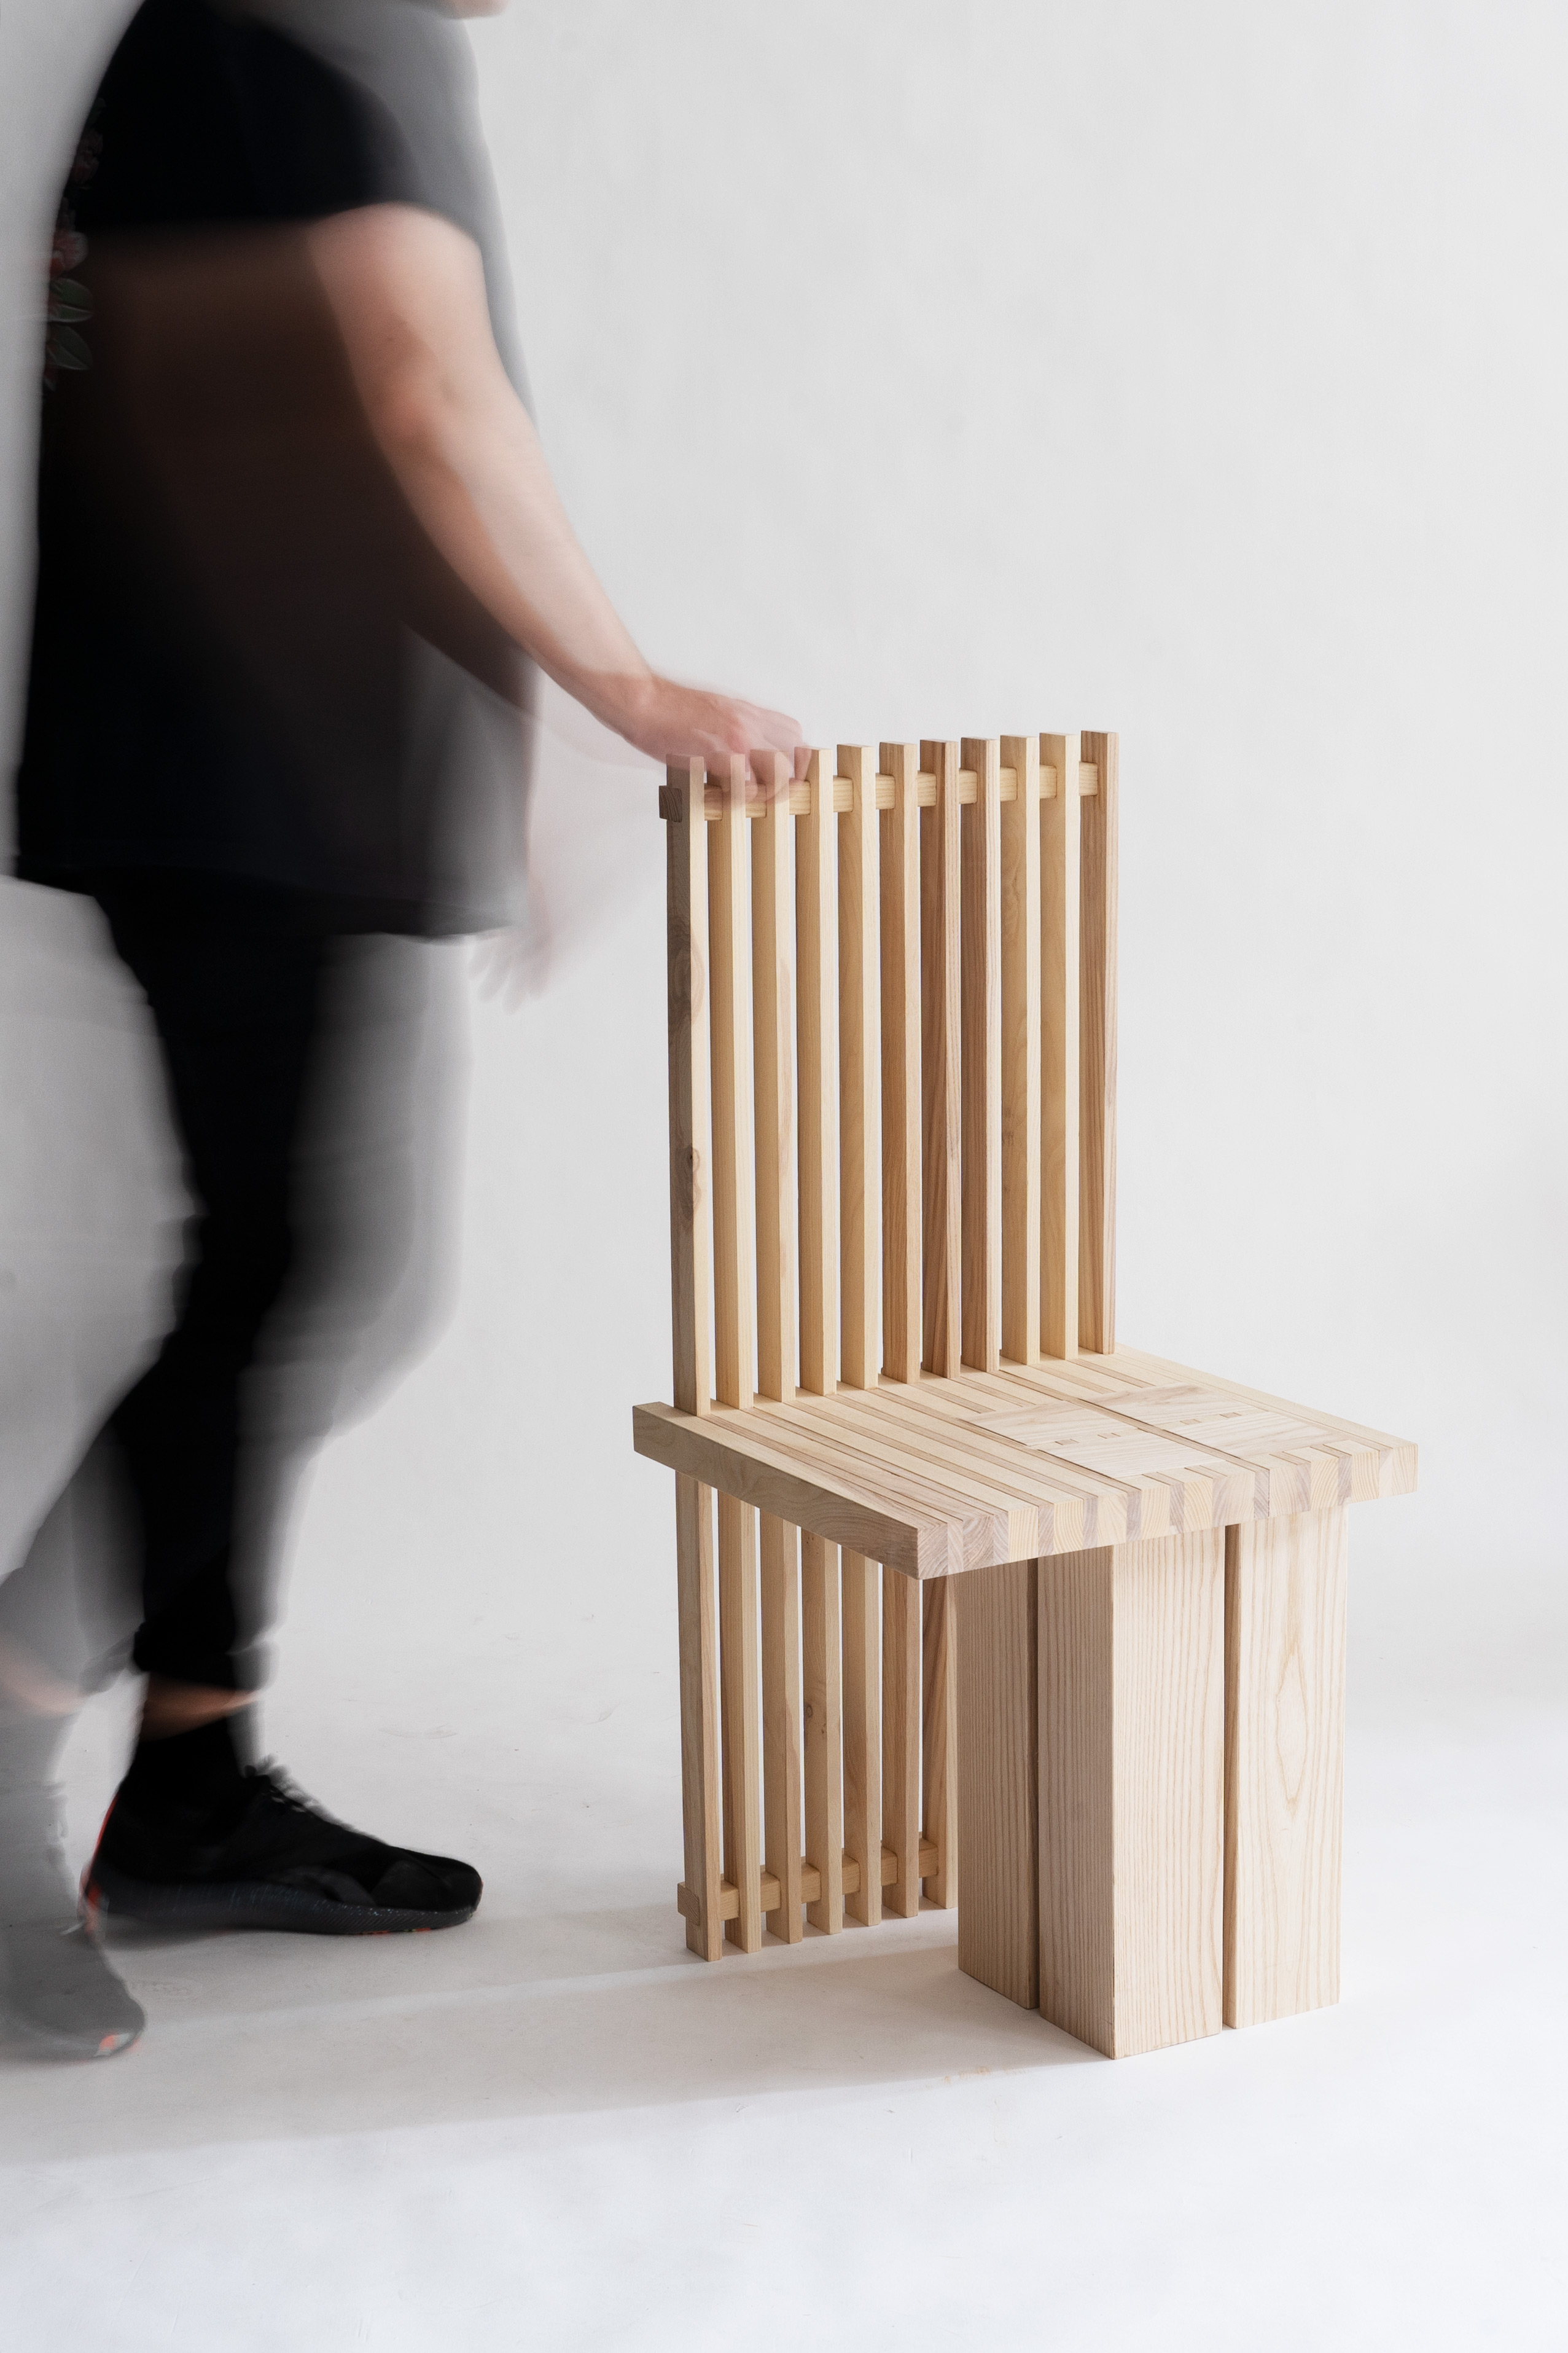 Side view of desk, chair, and lamp design, made of wood